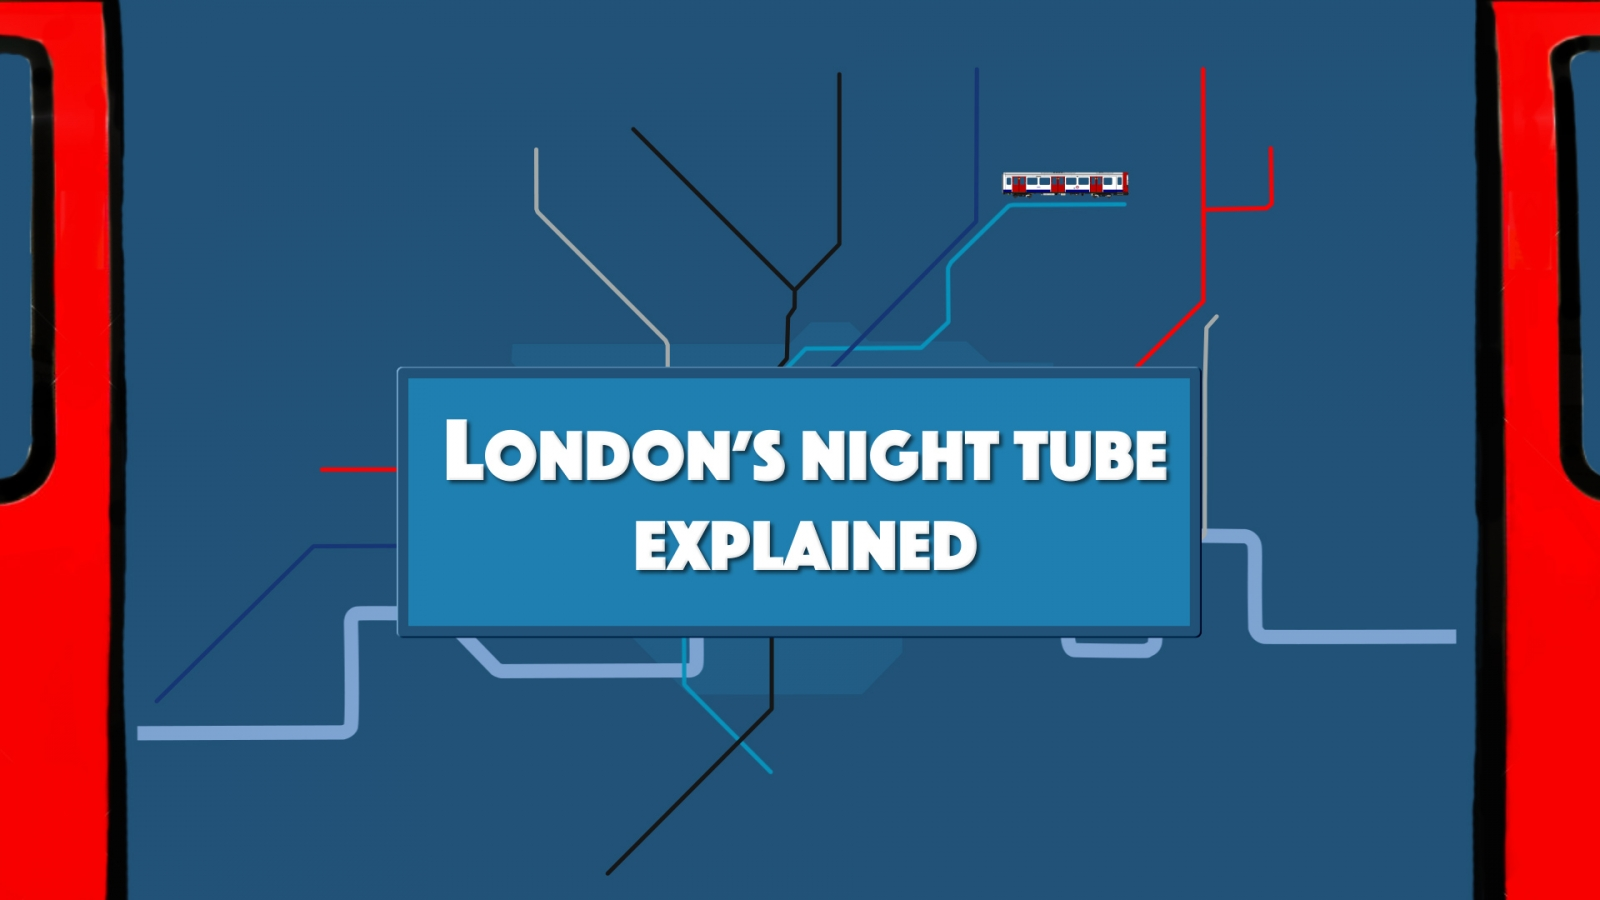 London's night tube explained